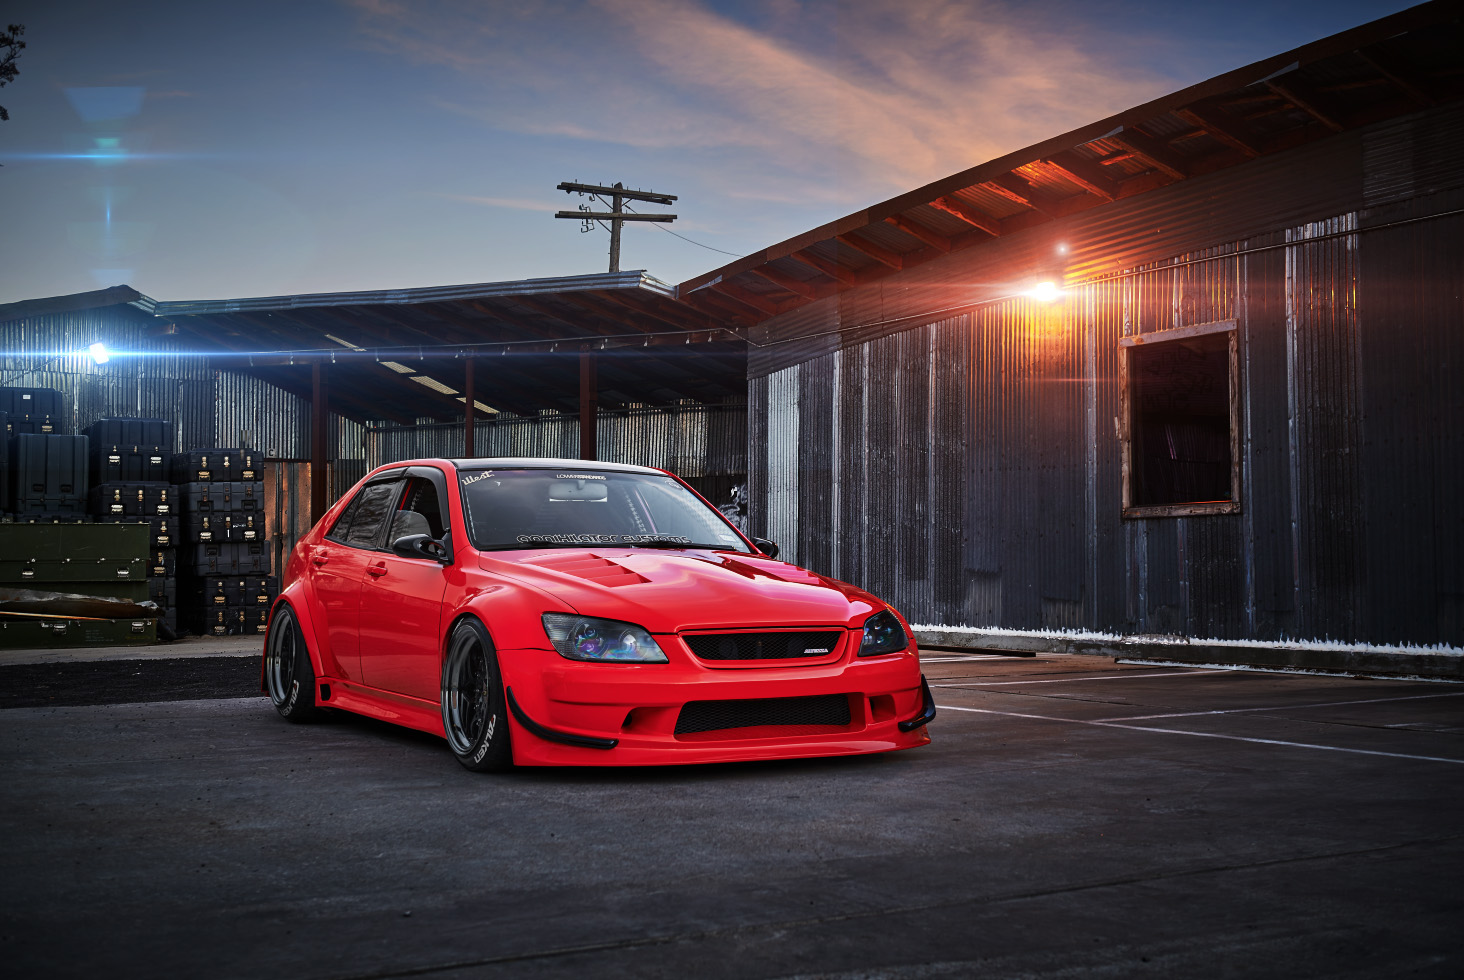 01 Roy Moncada 2003 Lexus IS300 Tuner Battlegrounds